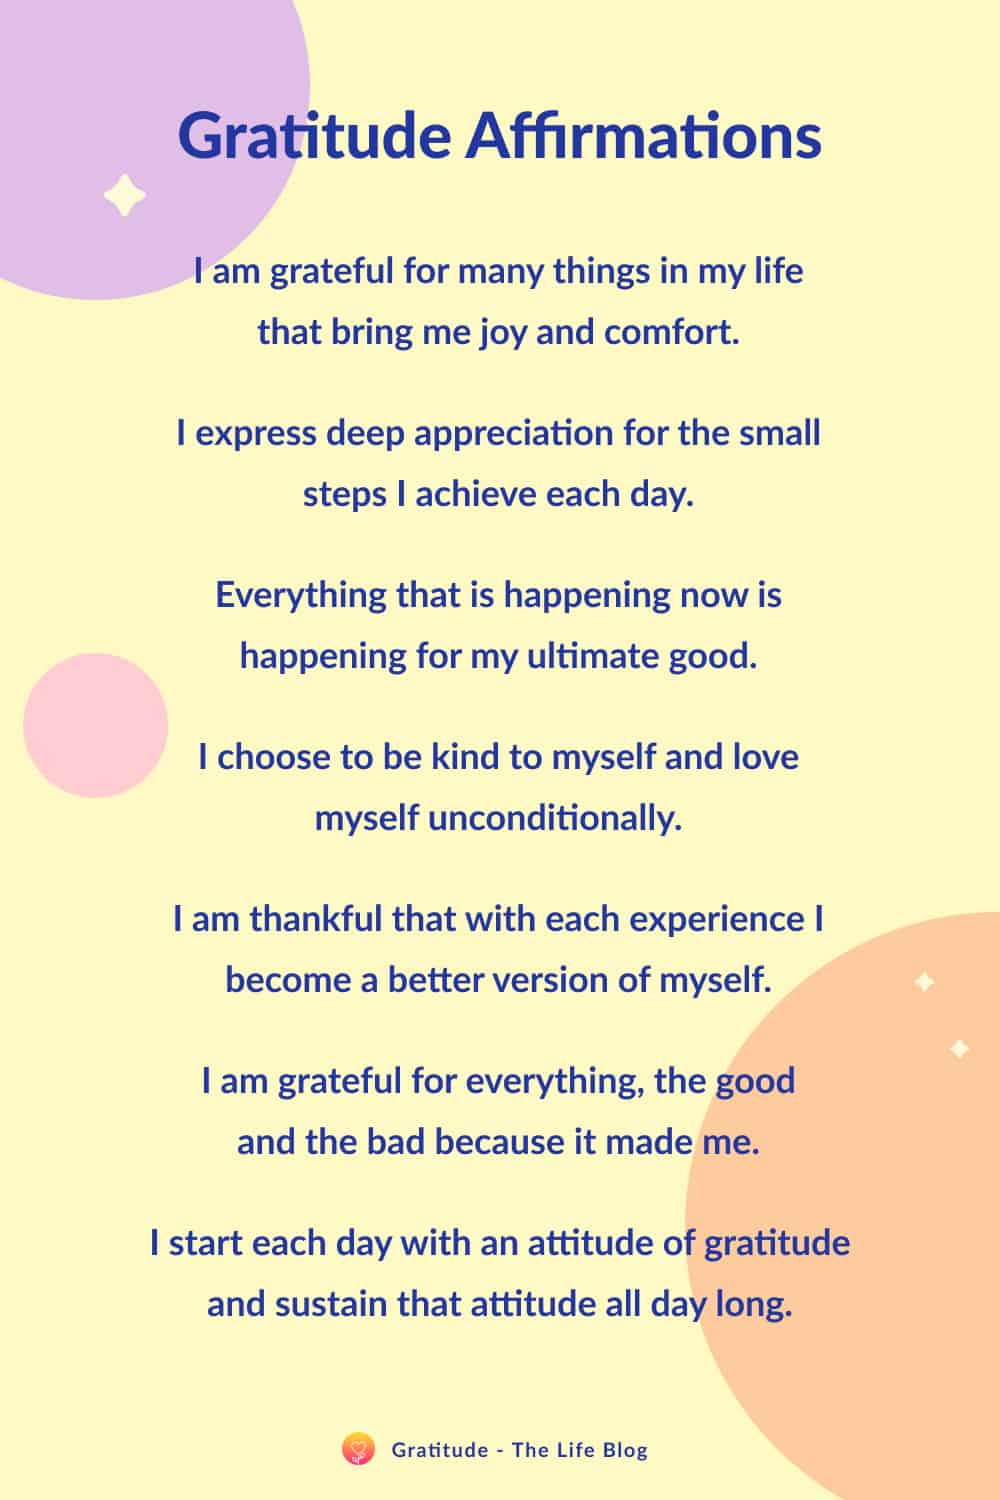 Image with list of gratitude affirmations